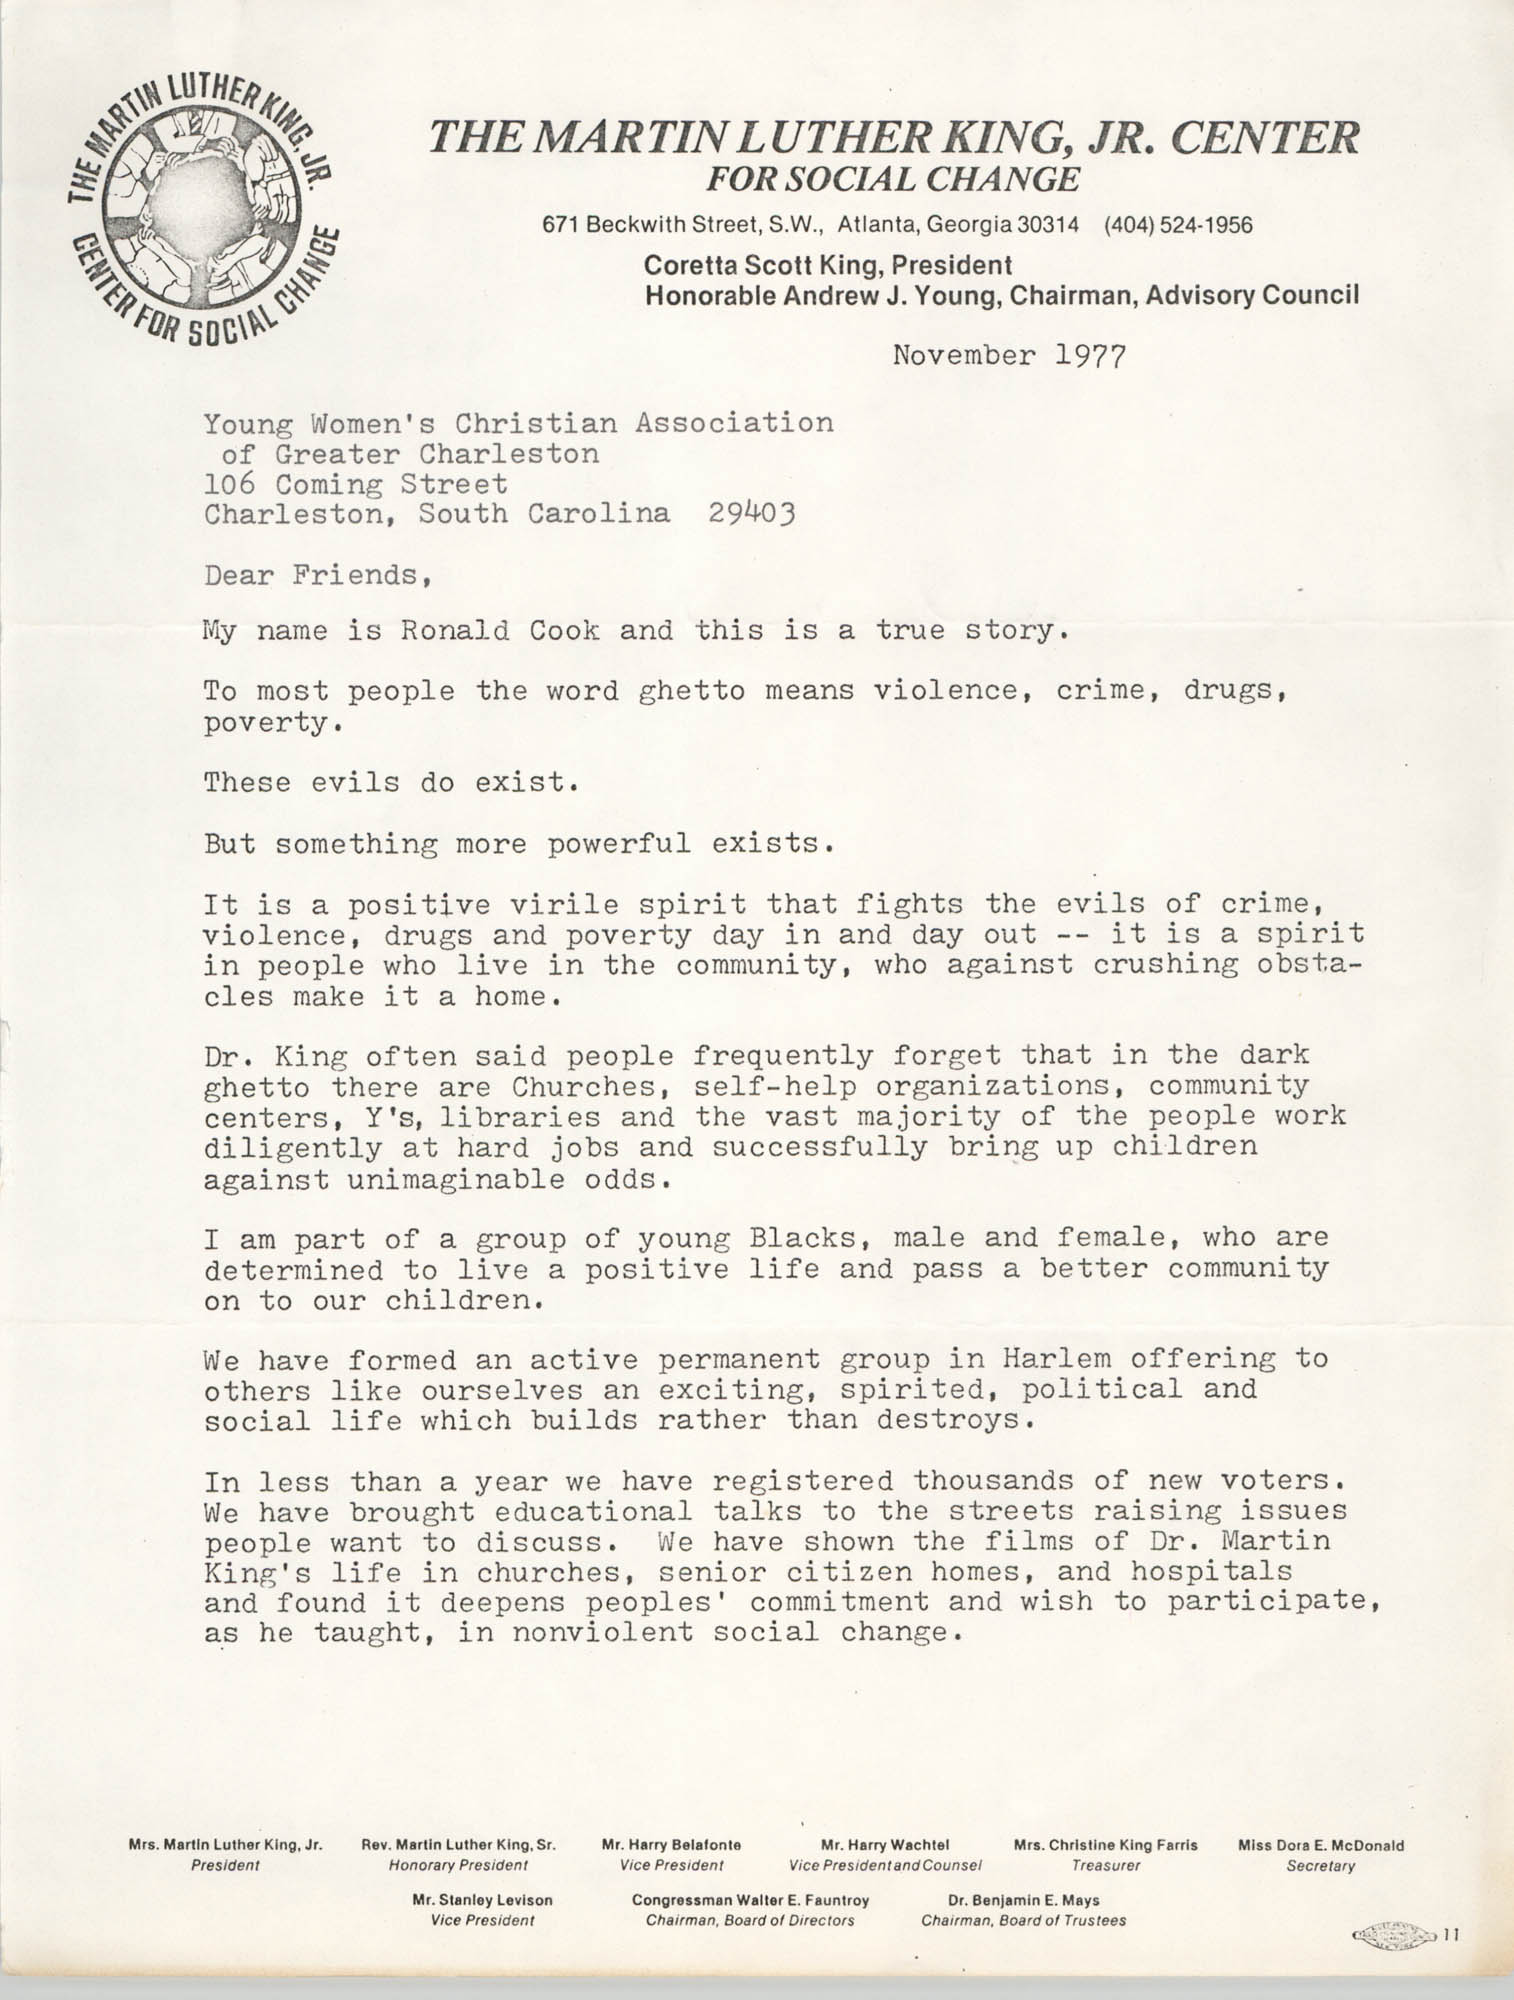 Letter from Ronald Cook and Coretta Scott King to Y.W.C.A. of Greater Charleston, November 1977